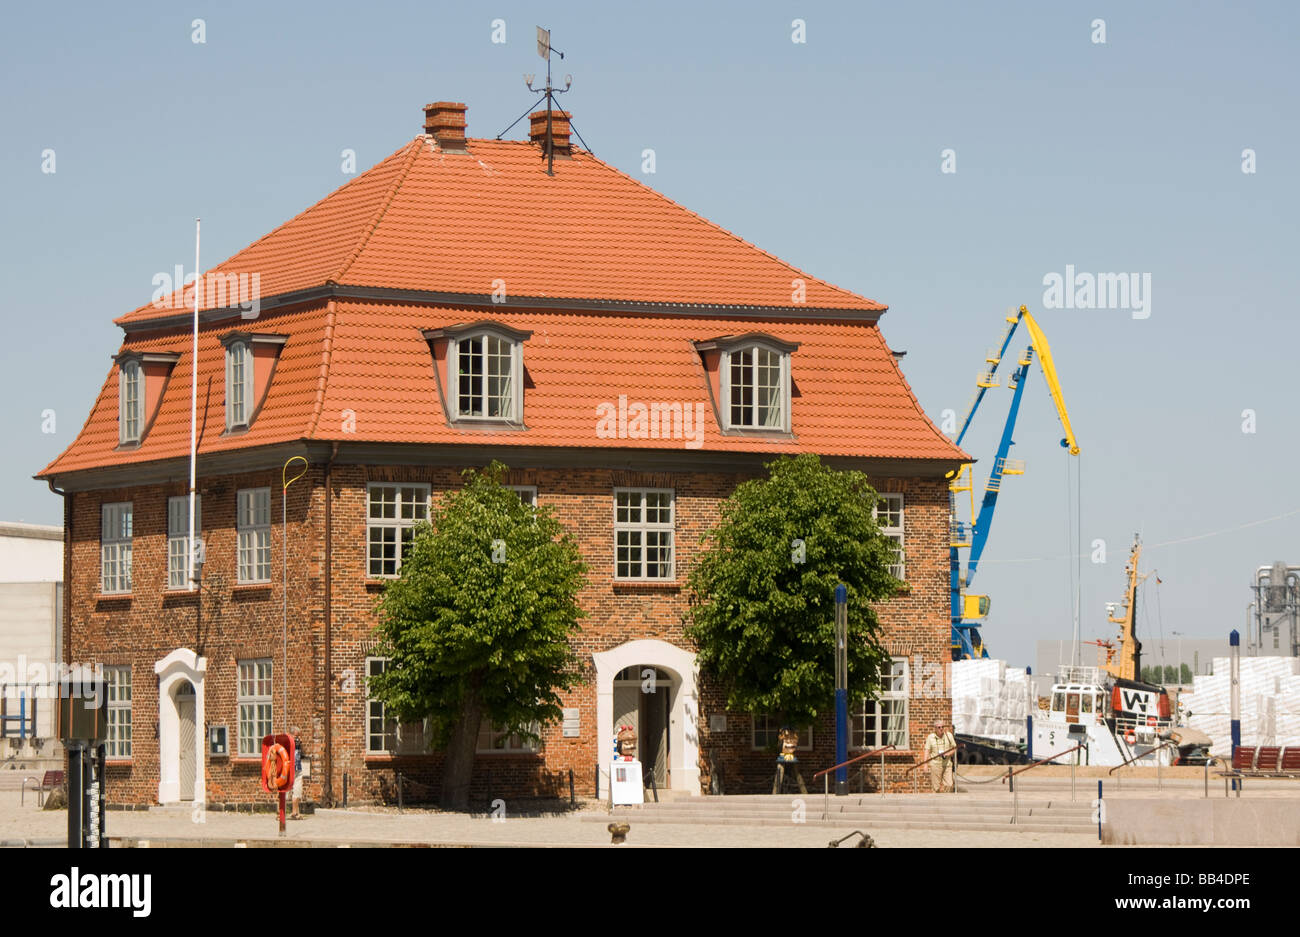 Baumhaus, Wismar, Germany - Stock Image